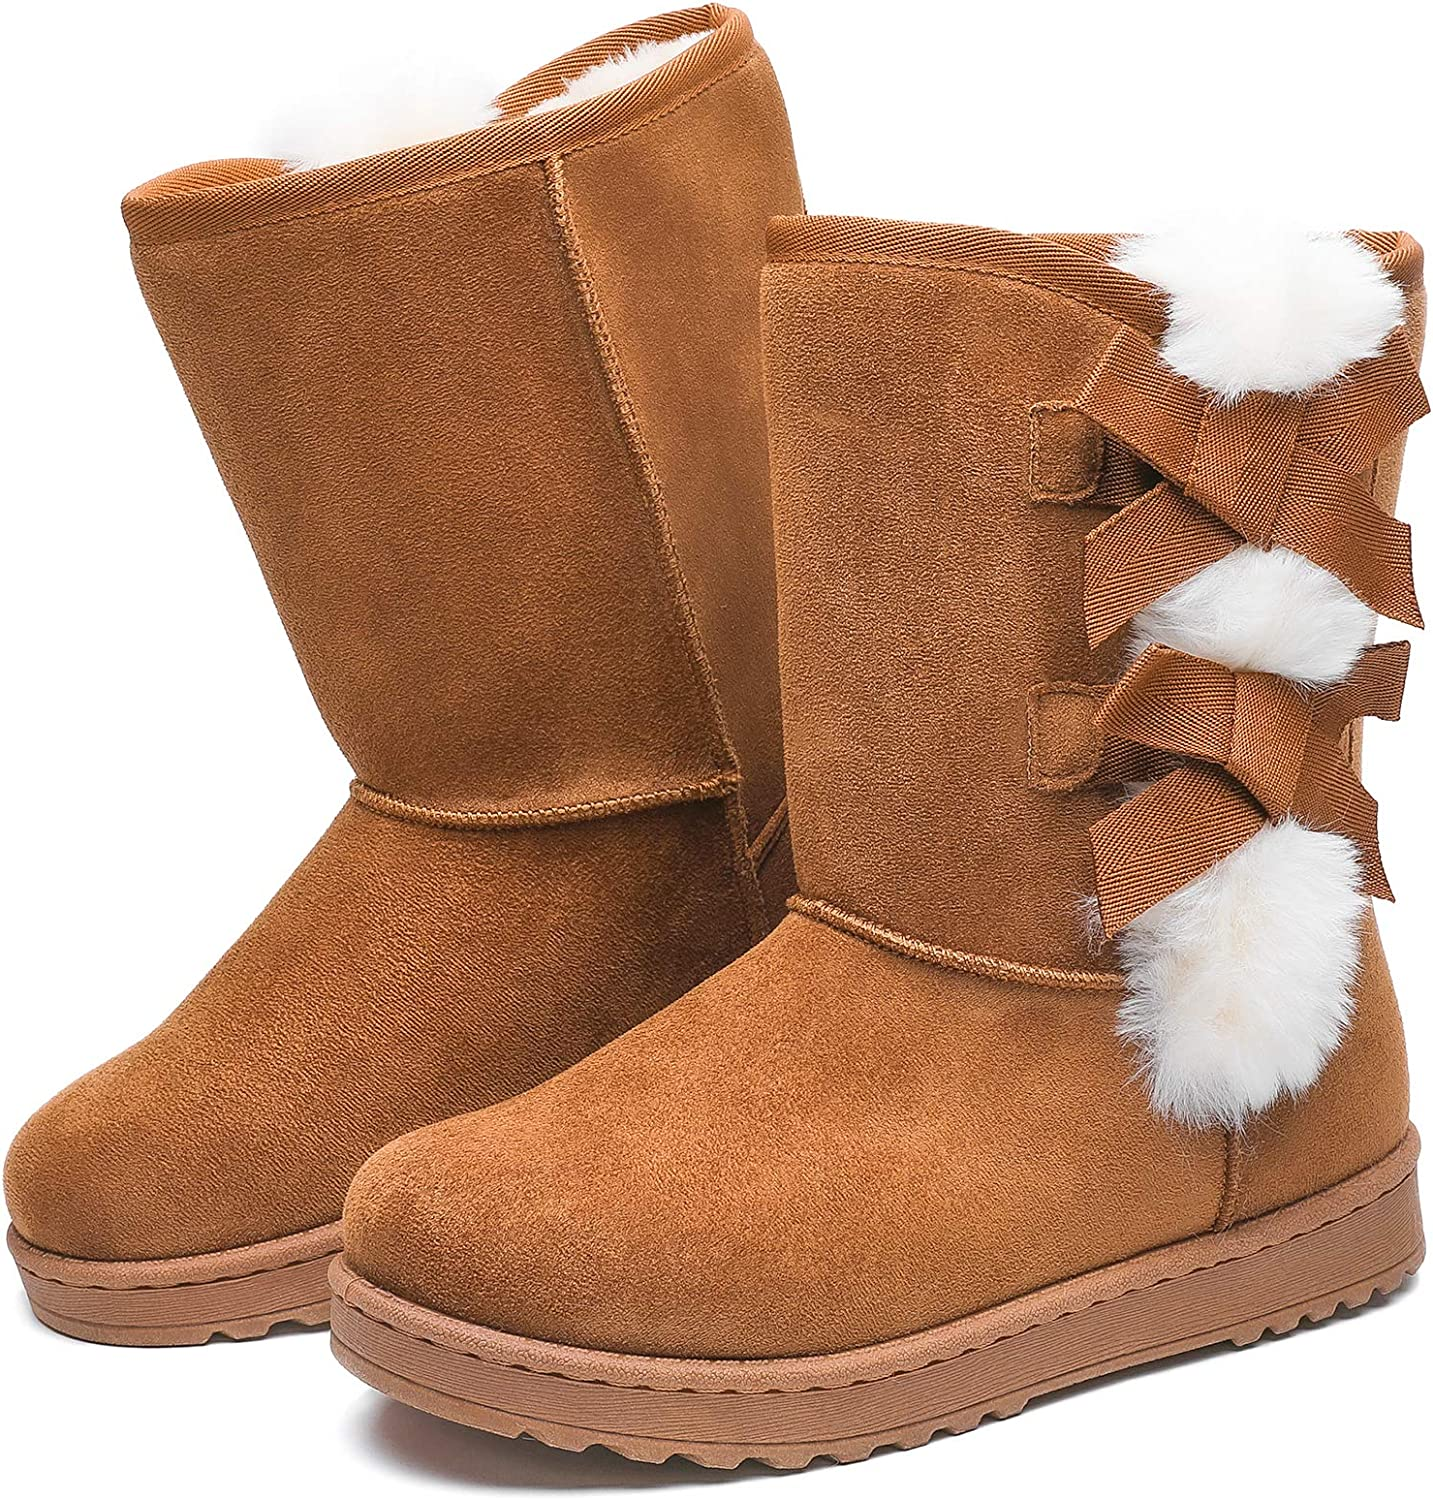 Winter Snow Boots for Women Mid Calf Warm Fur Lined Boots Slip on Fashion Bootie